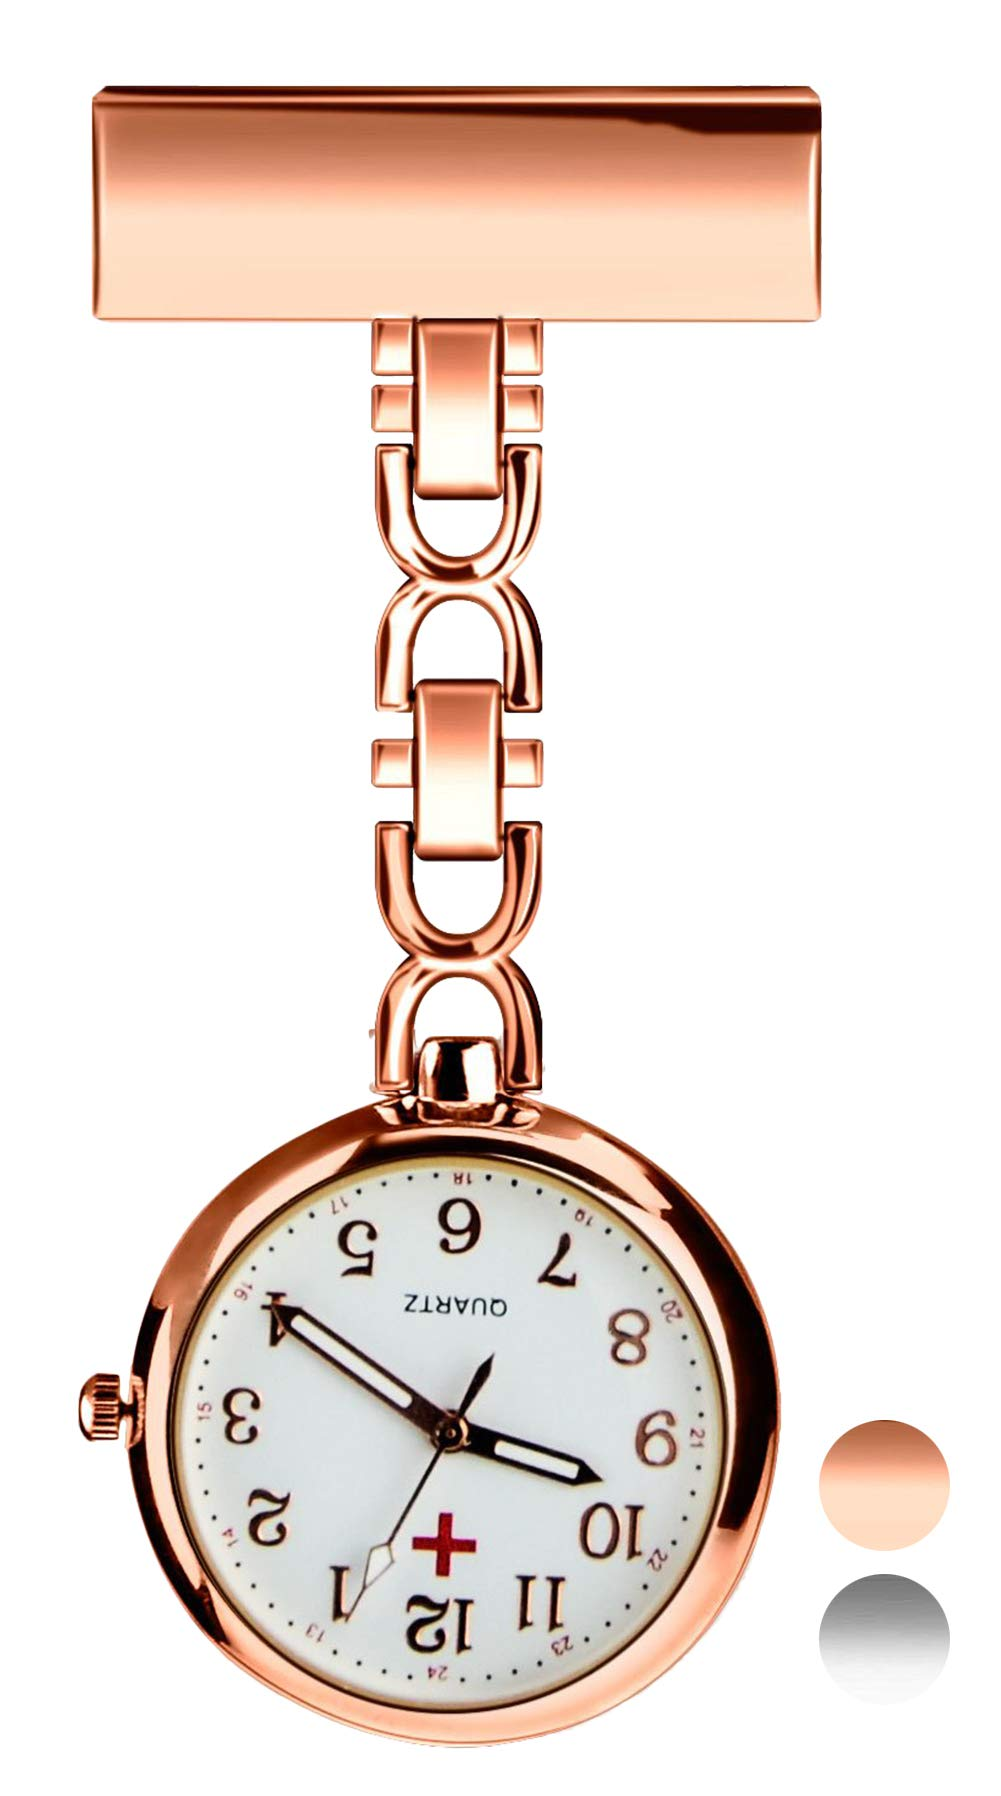 UEOTO Nurses Fob Watch – Medical Lapel Pin Clip-on Brooch Hanging Pocket Fob Watches for Men Women, Daily Waterproof…